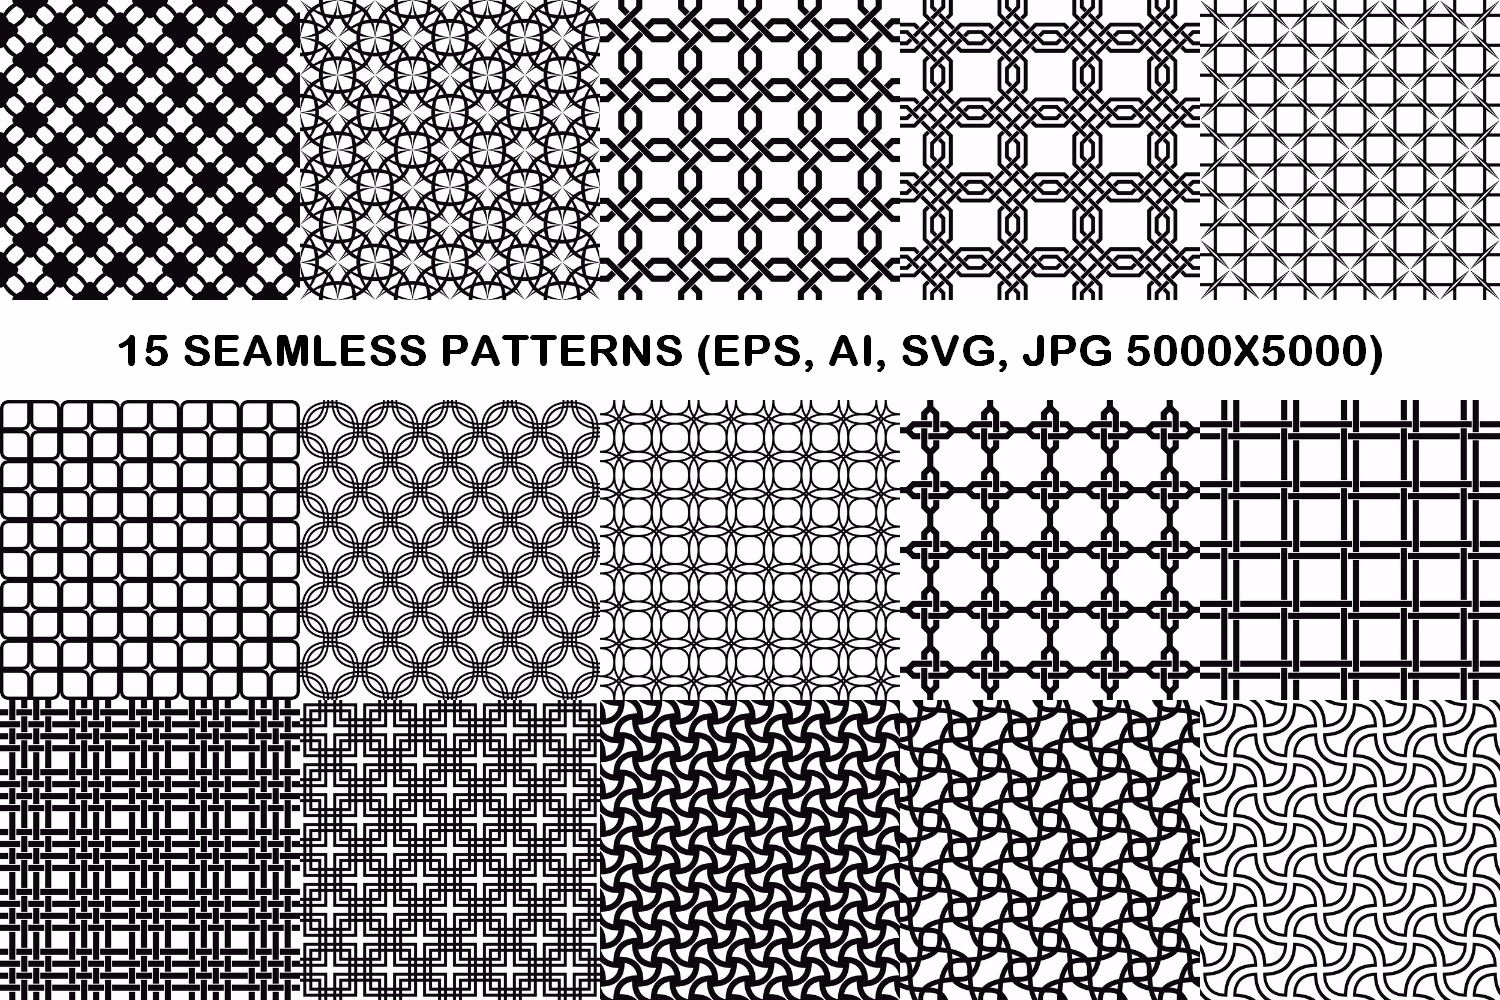 75 Monochrome Geometrical Patterns AI, EPS, JPG 5000x5000 example image 5